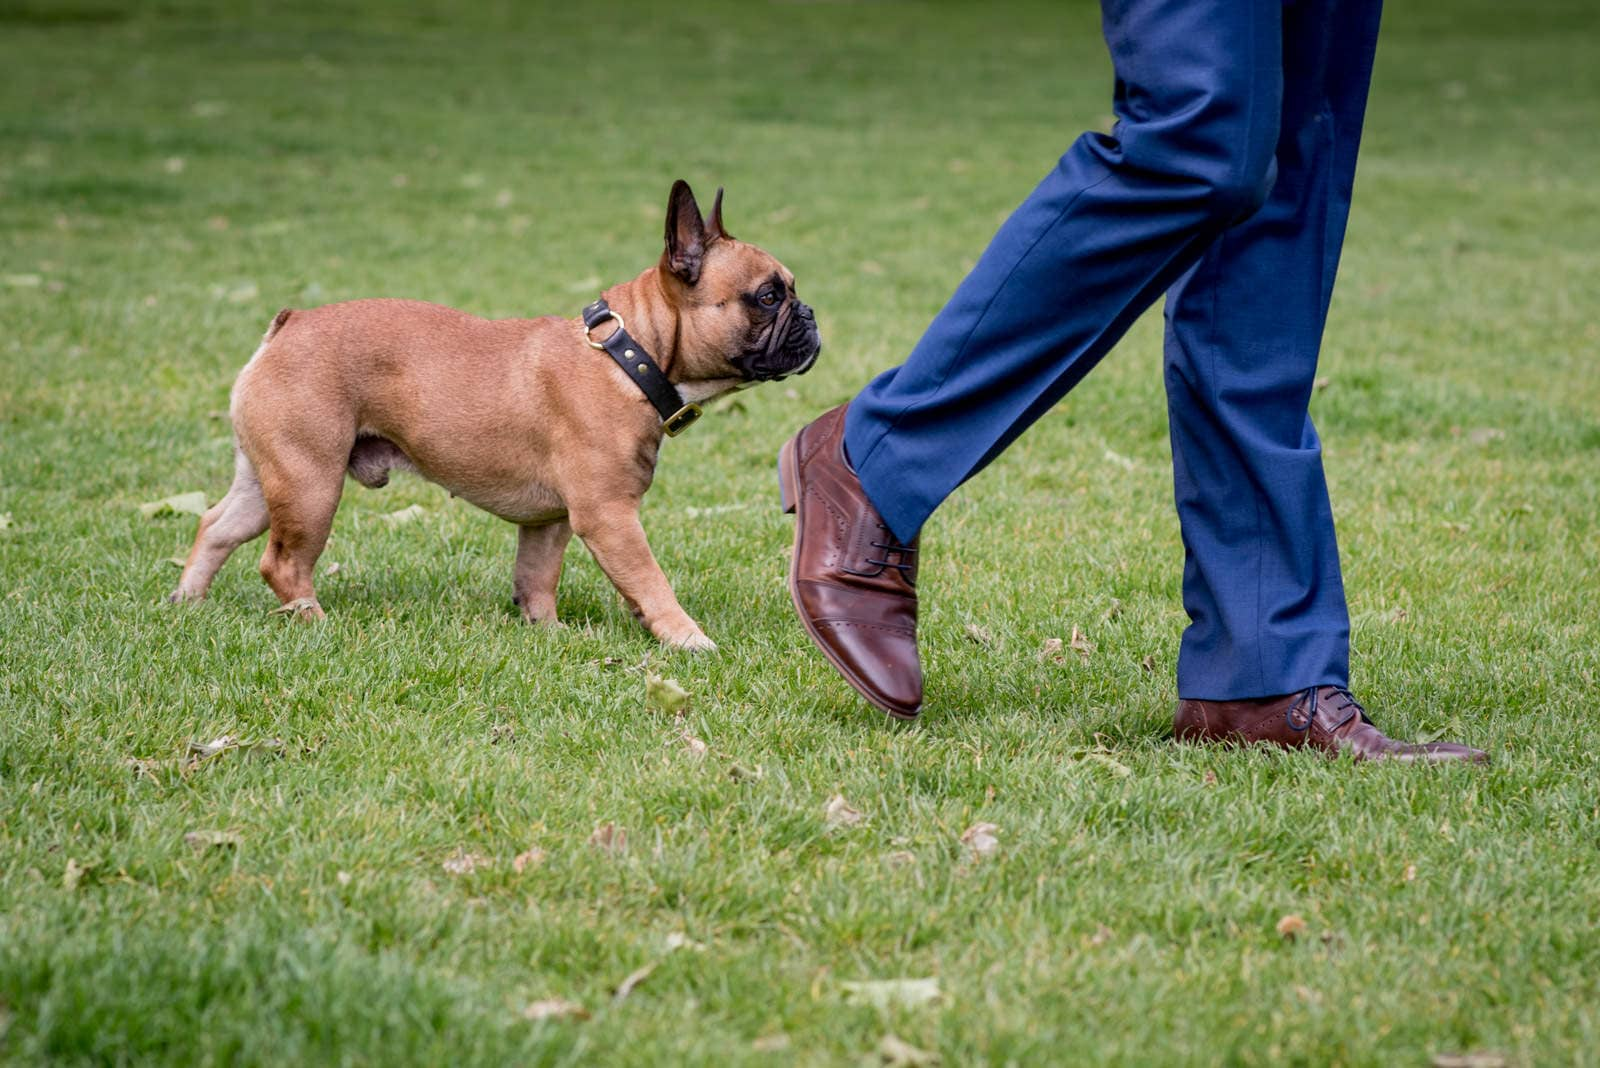 Small dog walking next to groom wearing a blue suit